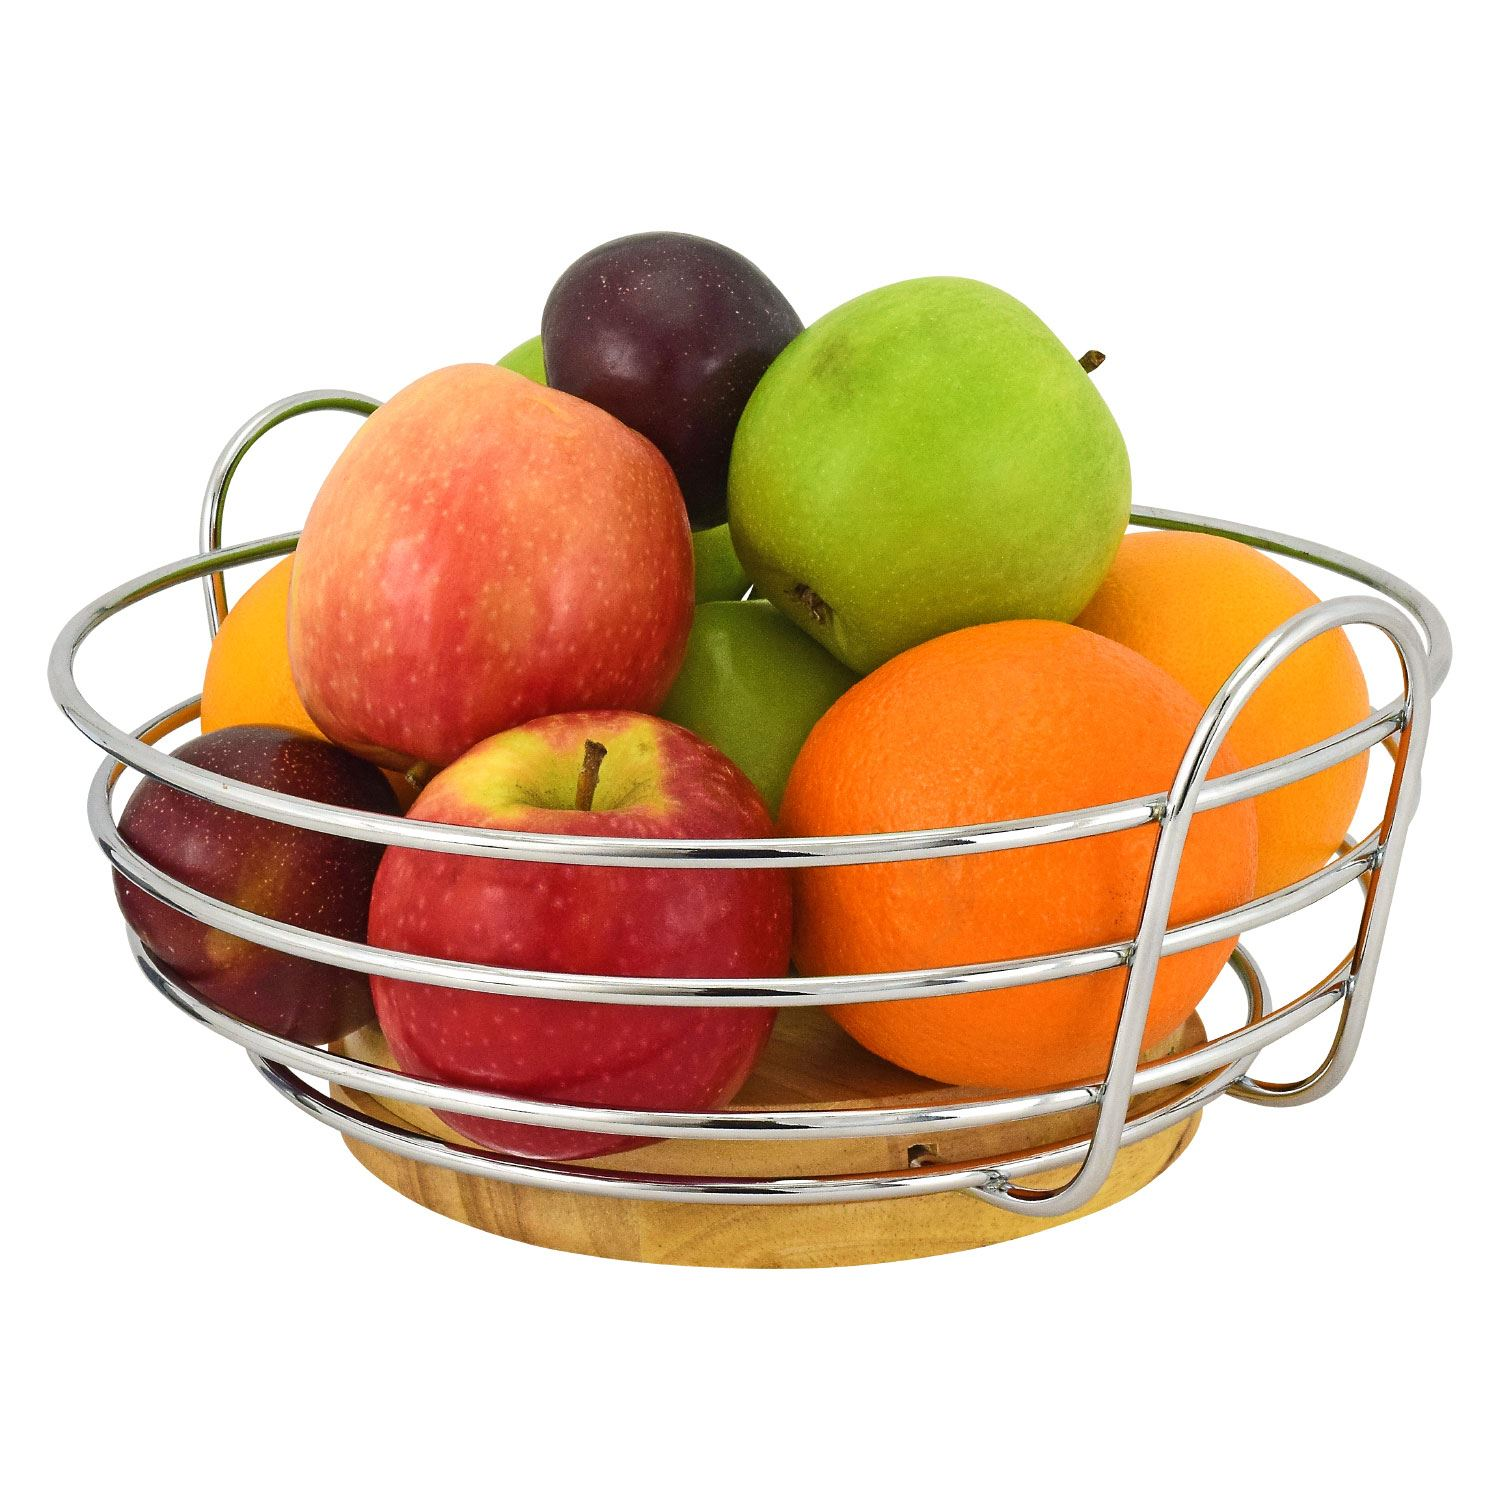 Chrome Decorative Bowl Decorative 27cm Round Chrome Wire Fruit Bowl Basket Holder